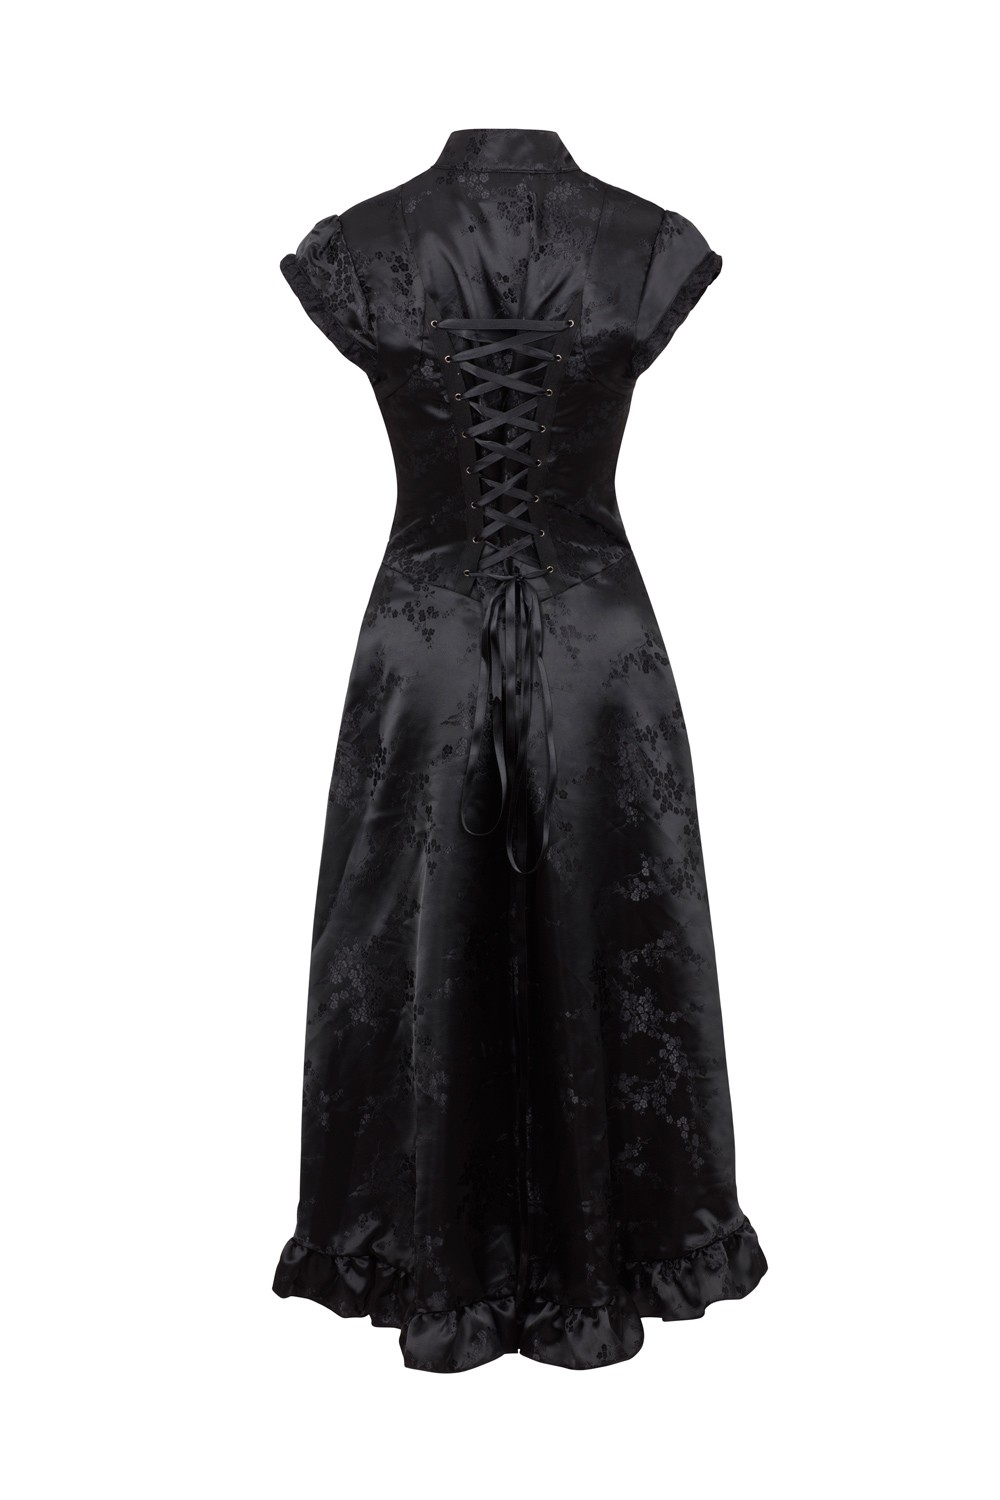 Madame of the House Goth Chinese Inspired Dress